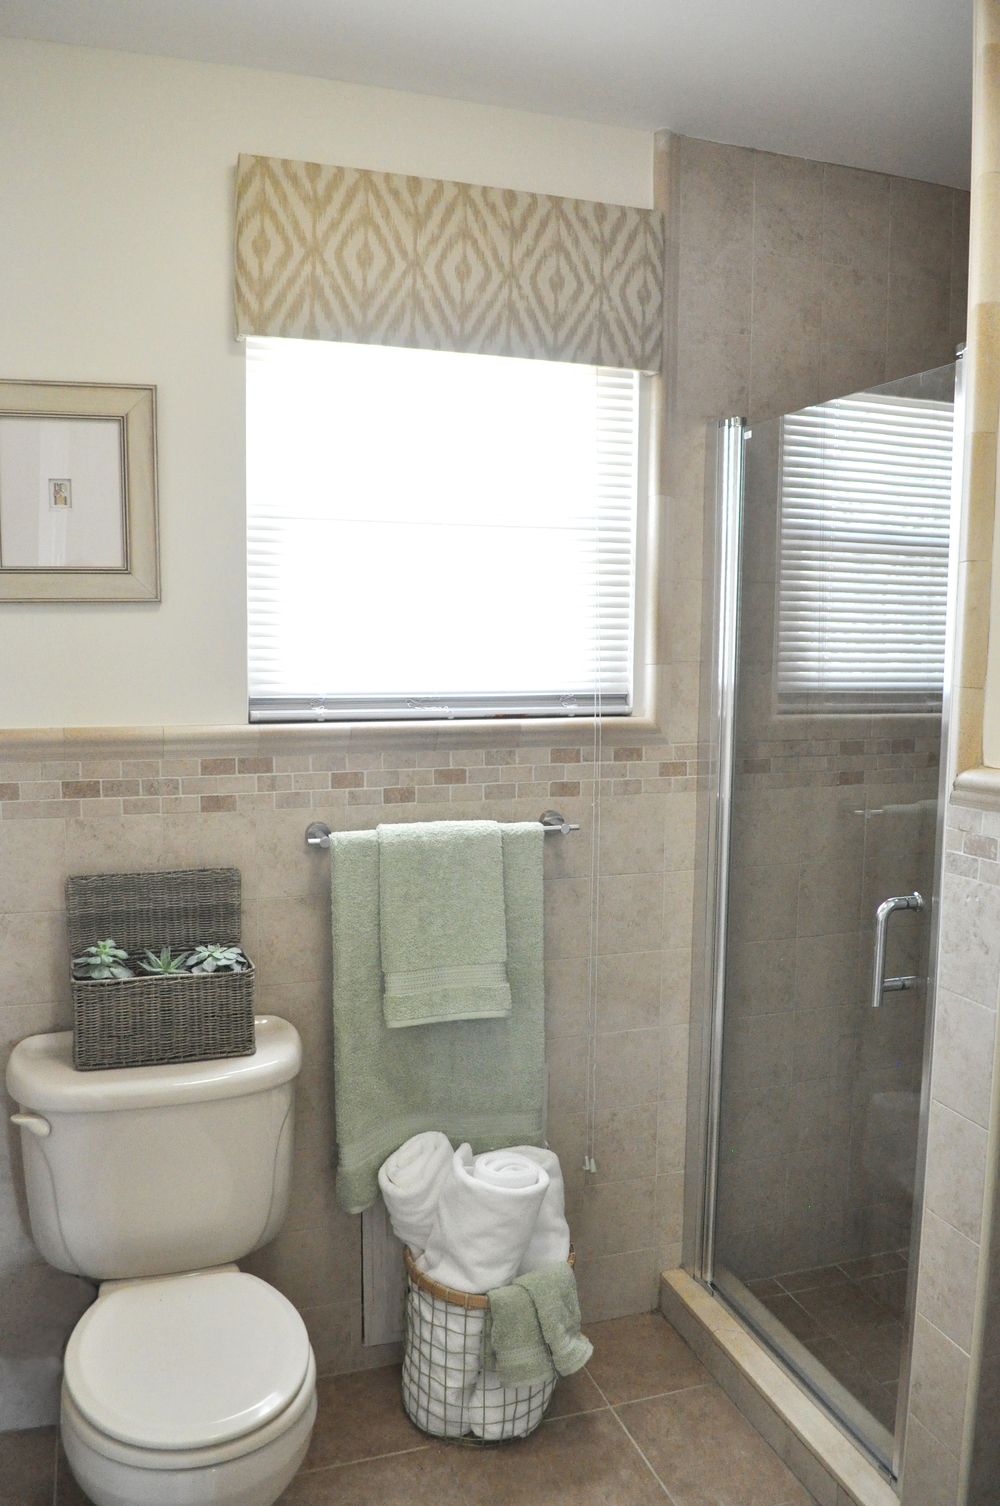 Kim Annick Mitchell_Production Designer_HGTV_Buying and Selling with The Property Brothers_Season 3_Episode 315_Master Bath_Styling_Glass Door_Valance_No remodel.jpg